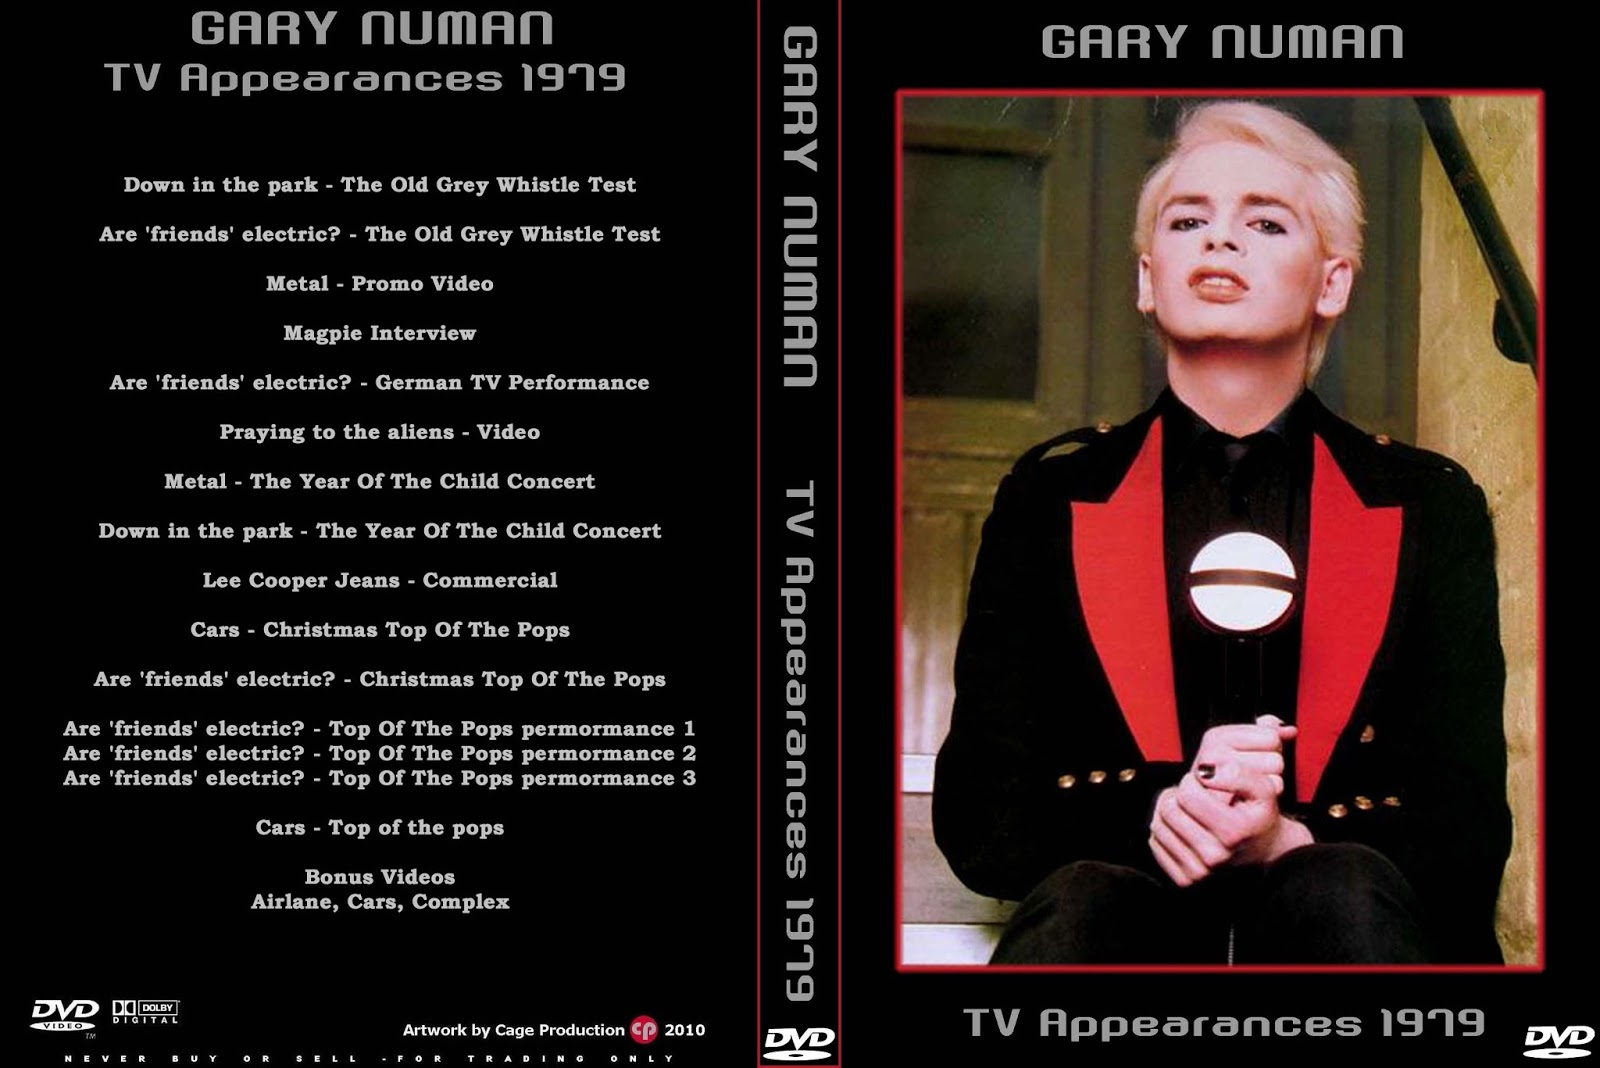 Music Tv And Video Archives Gary Numan On Dvd